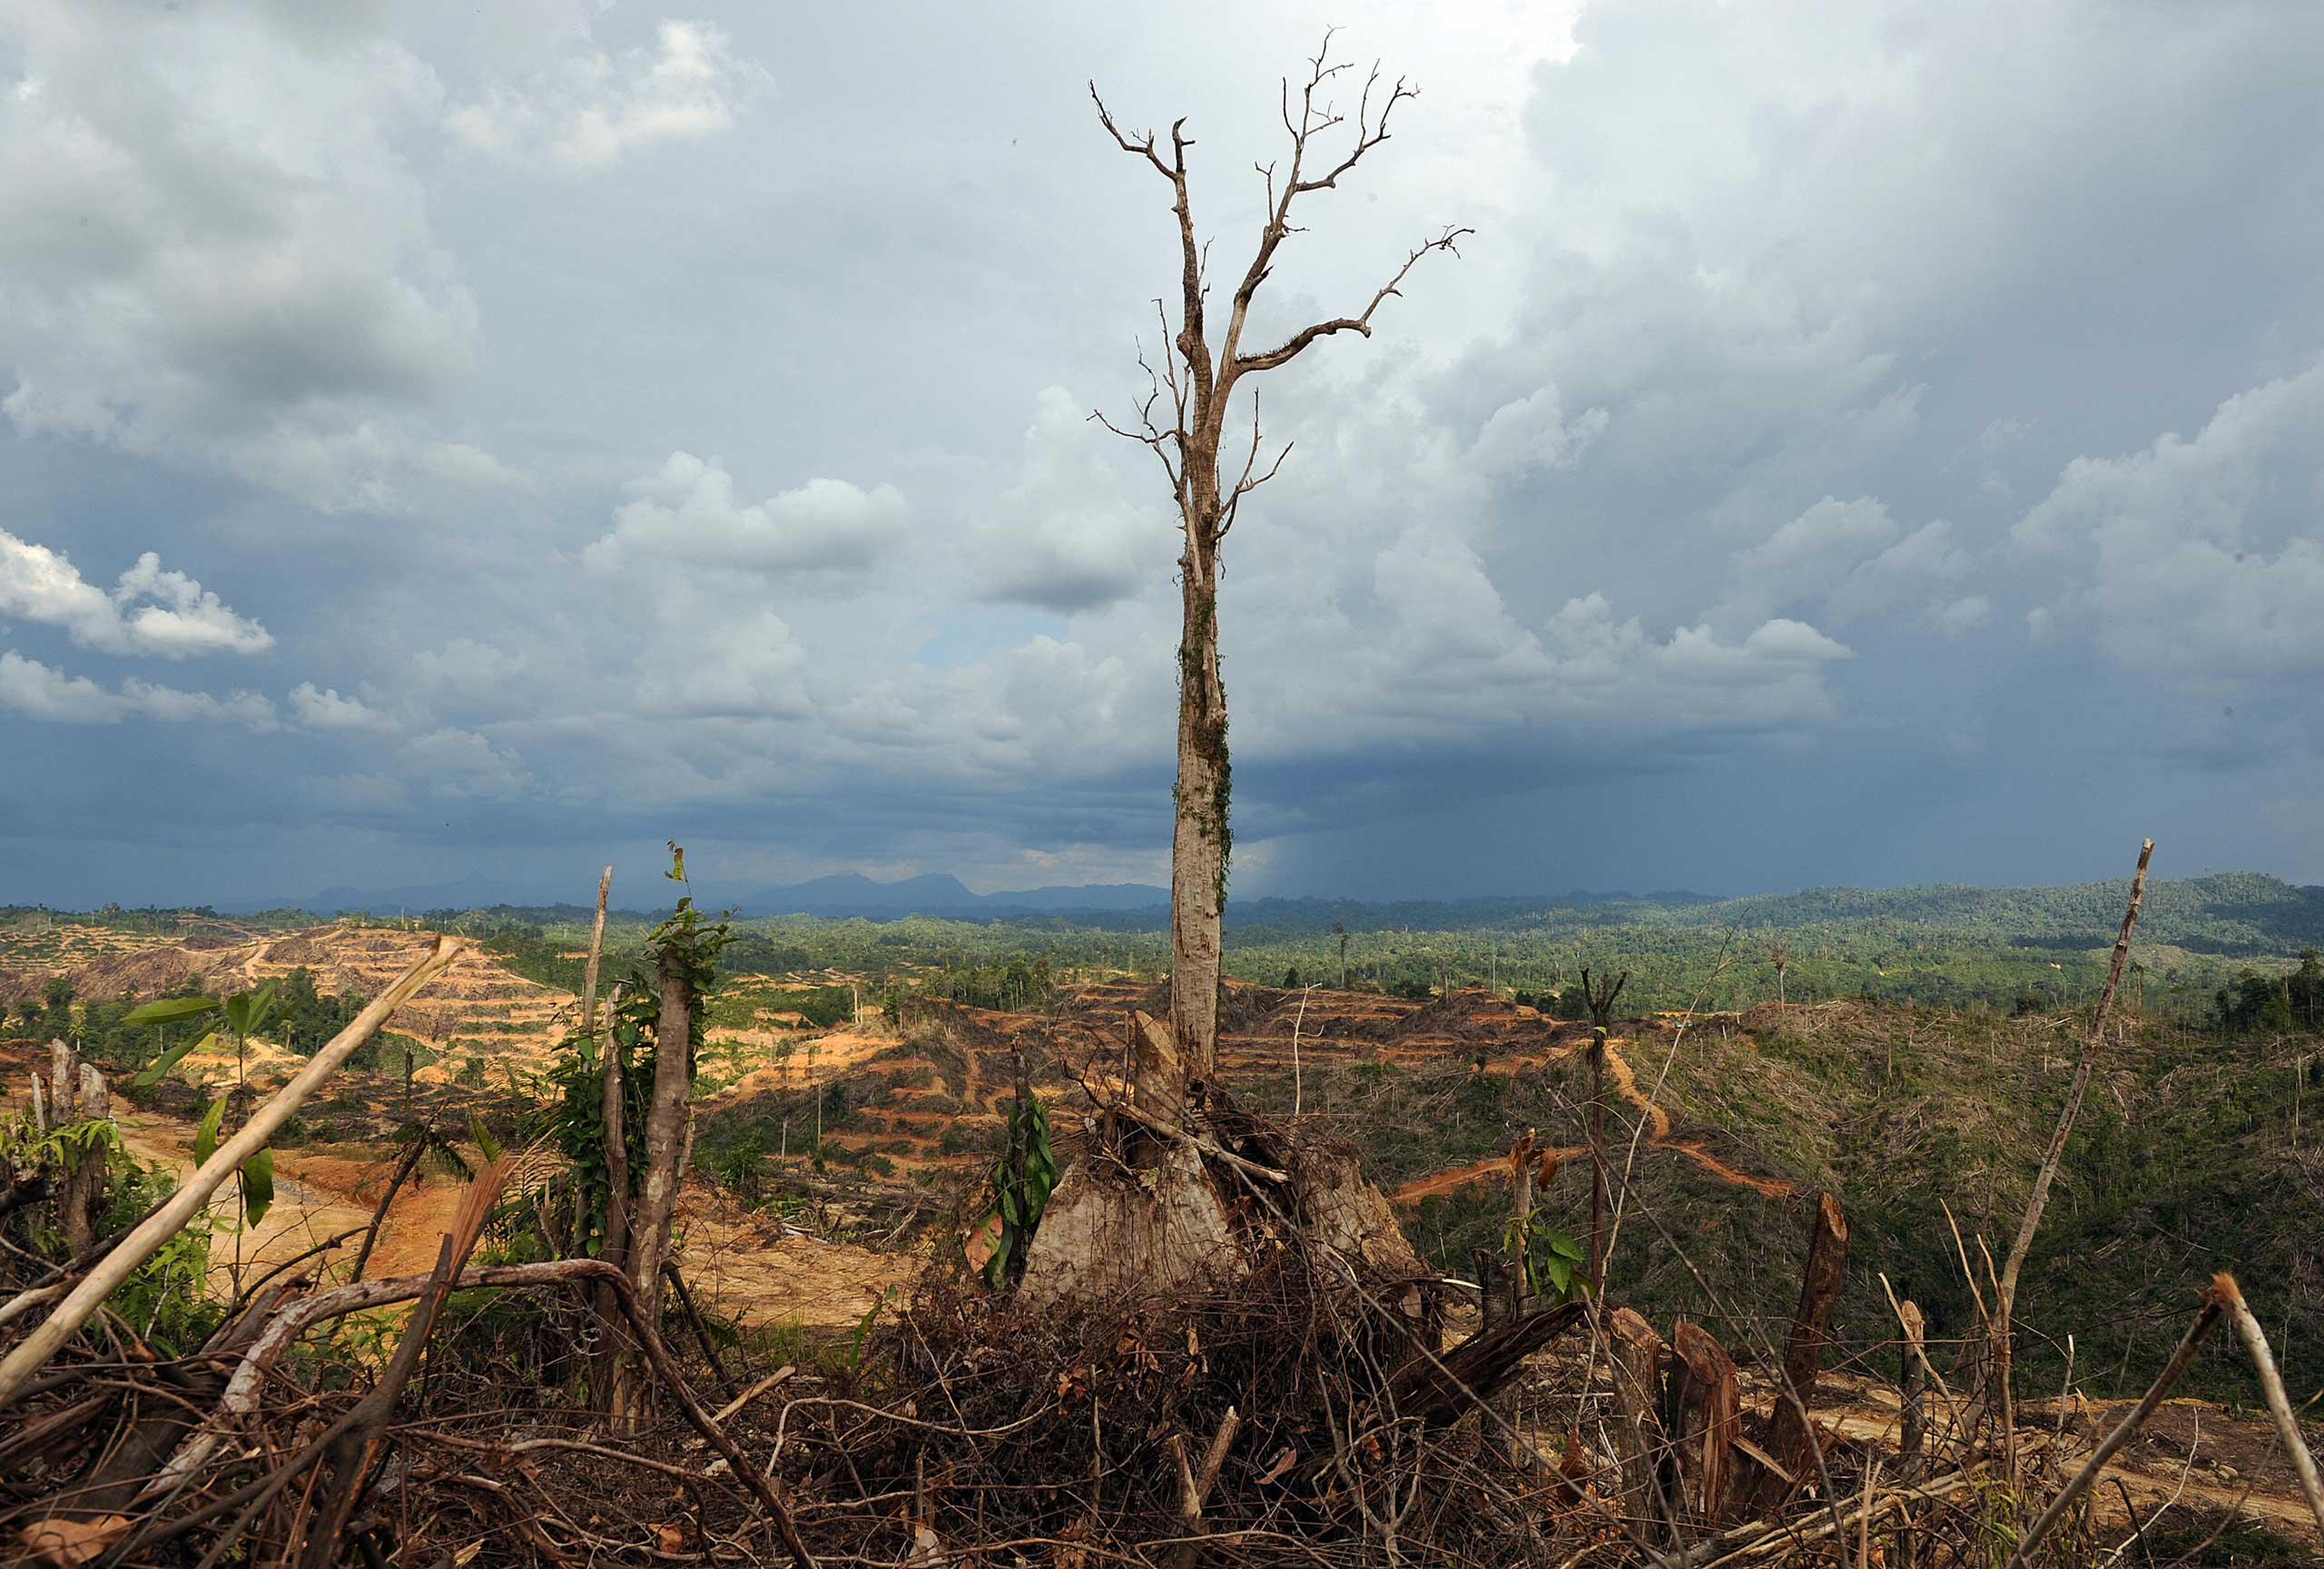 A tree stands alone in a logged area prepared for palm oil plantation near Lapok in Malaysia's Sarawak State in 2009.